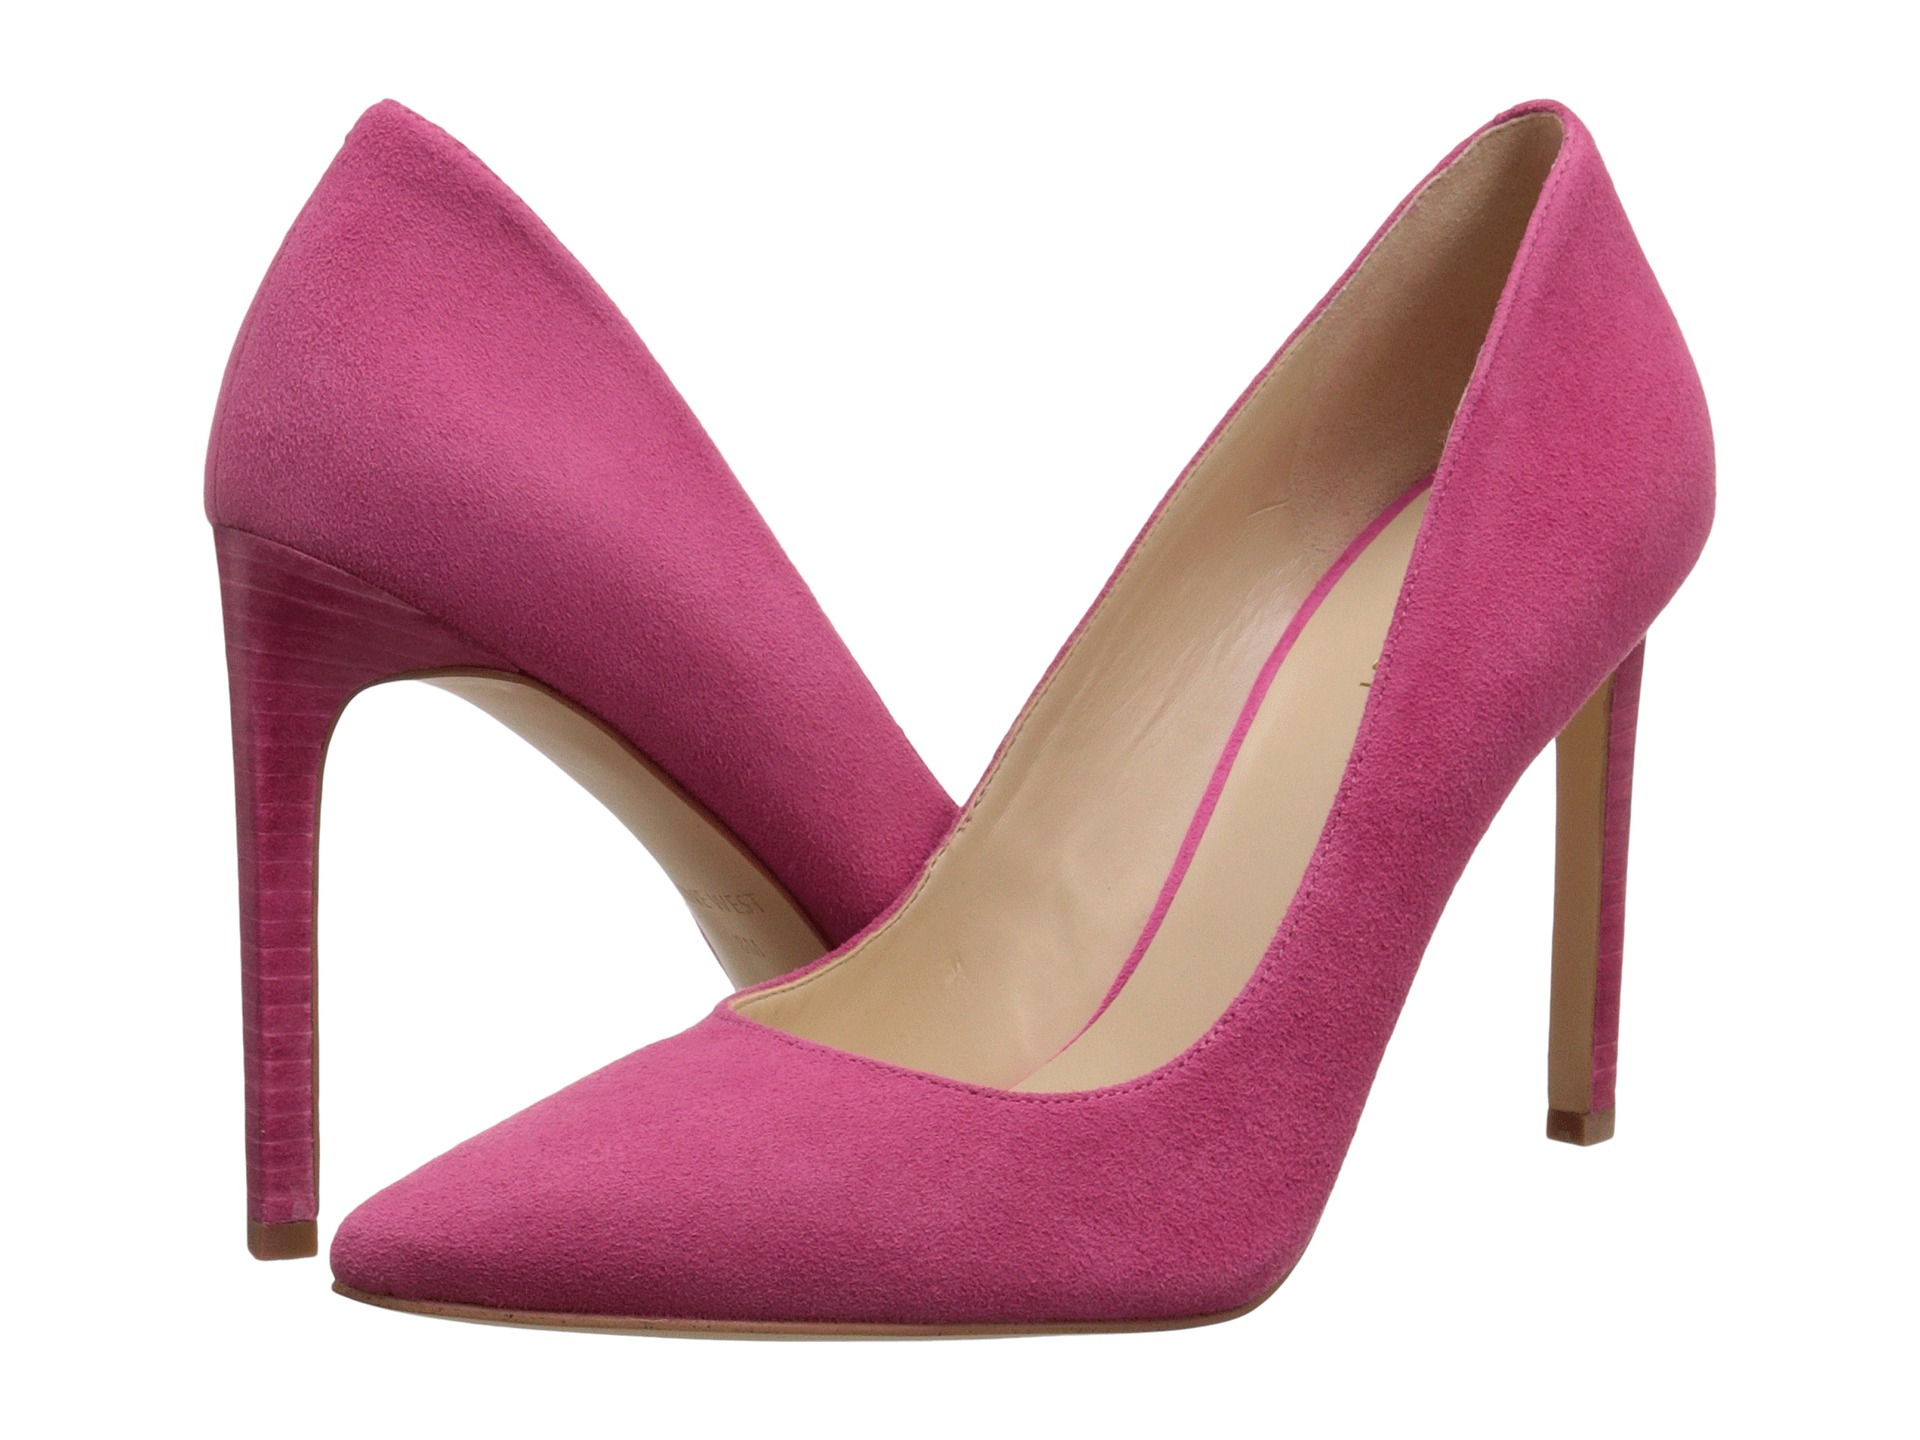 fd7578c6889 8 pretty pink party pumps   High Heels Daily